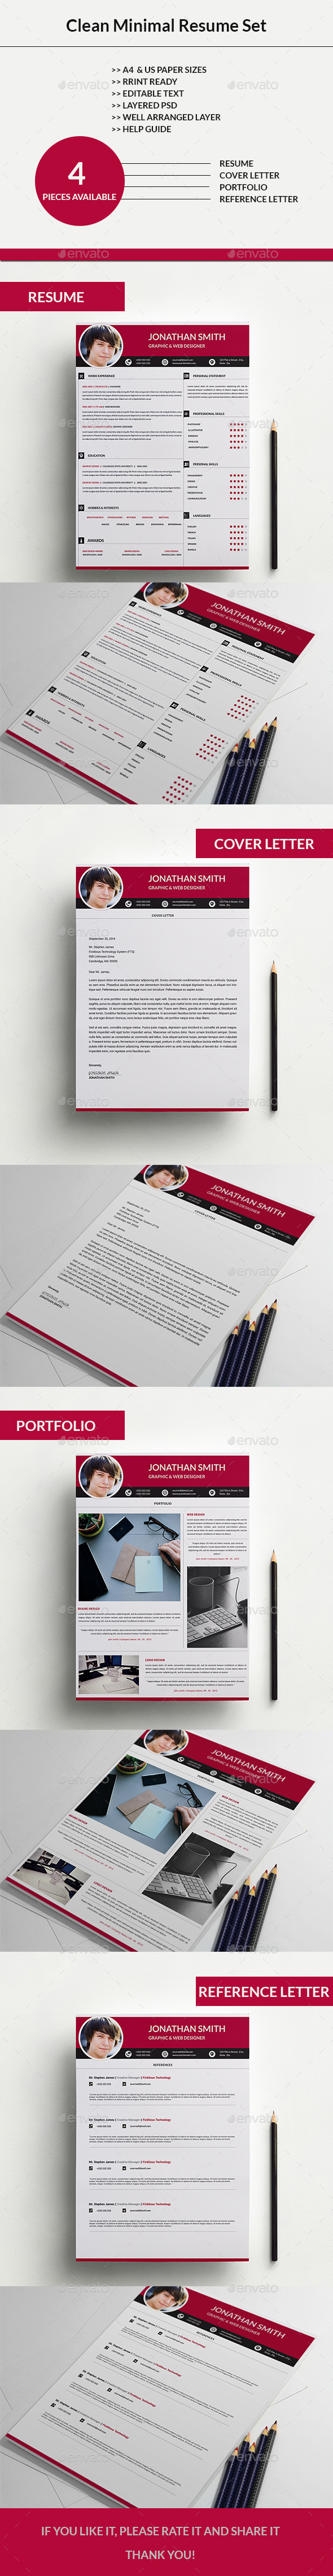 Clean Minimal Resume Set 03